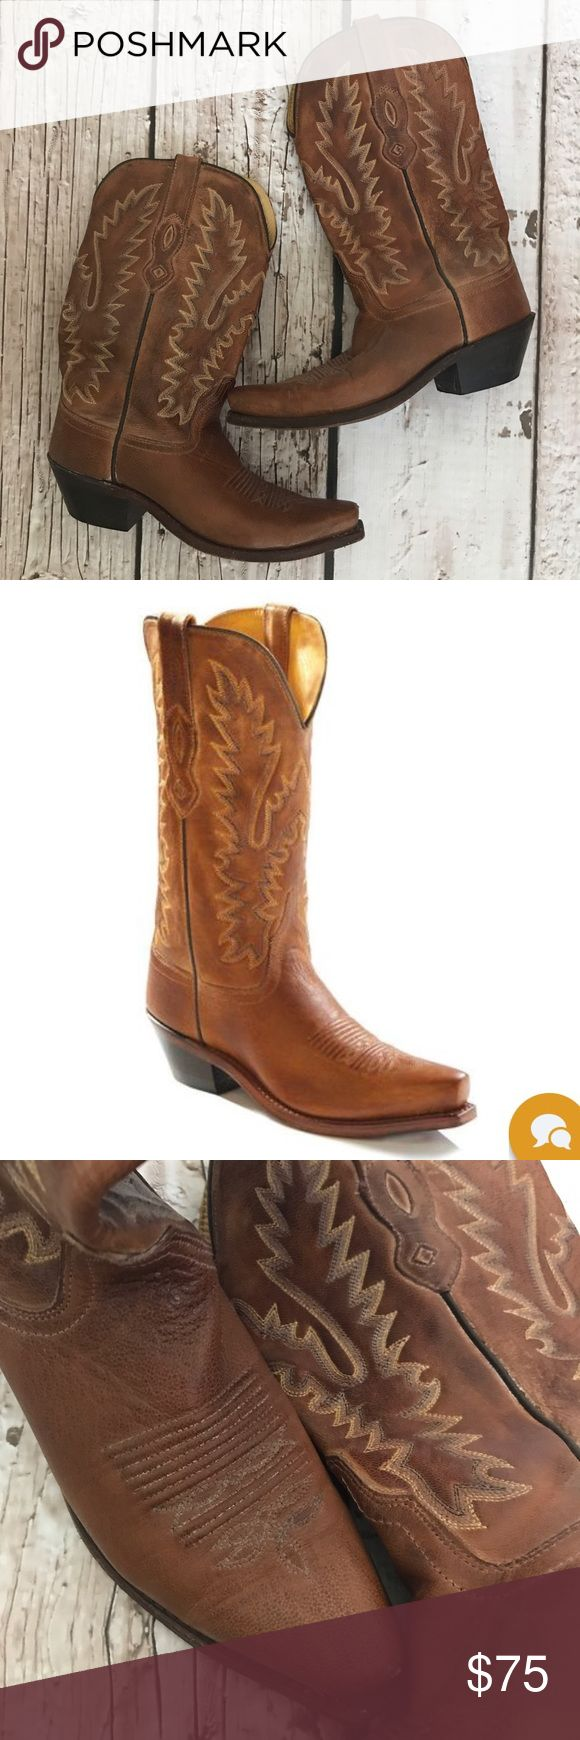 Old West Boots Old West women's western boots. Genuine leather. Gently worn a few times. Roughed up soles only to prevent slipping. Old West Shoes Heeled Boots